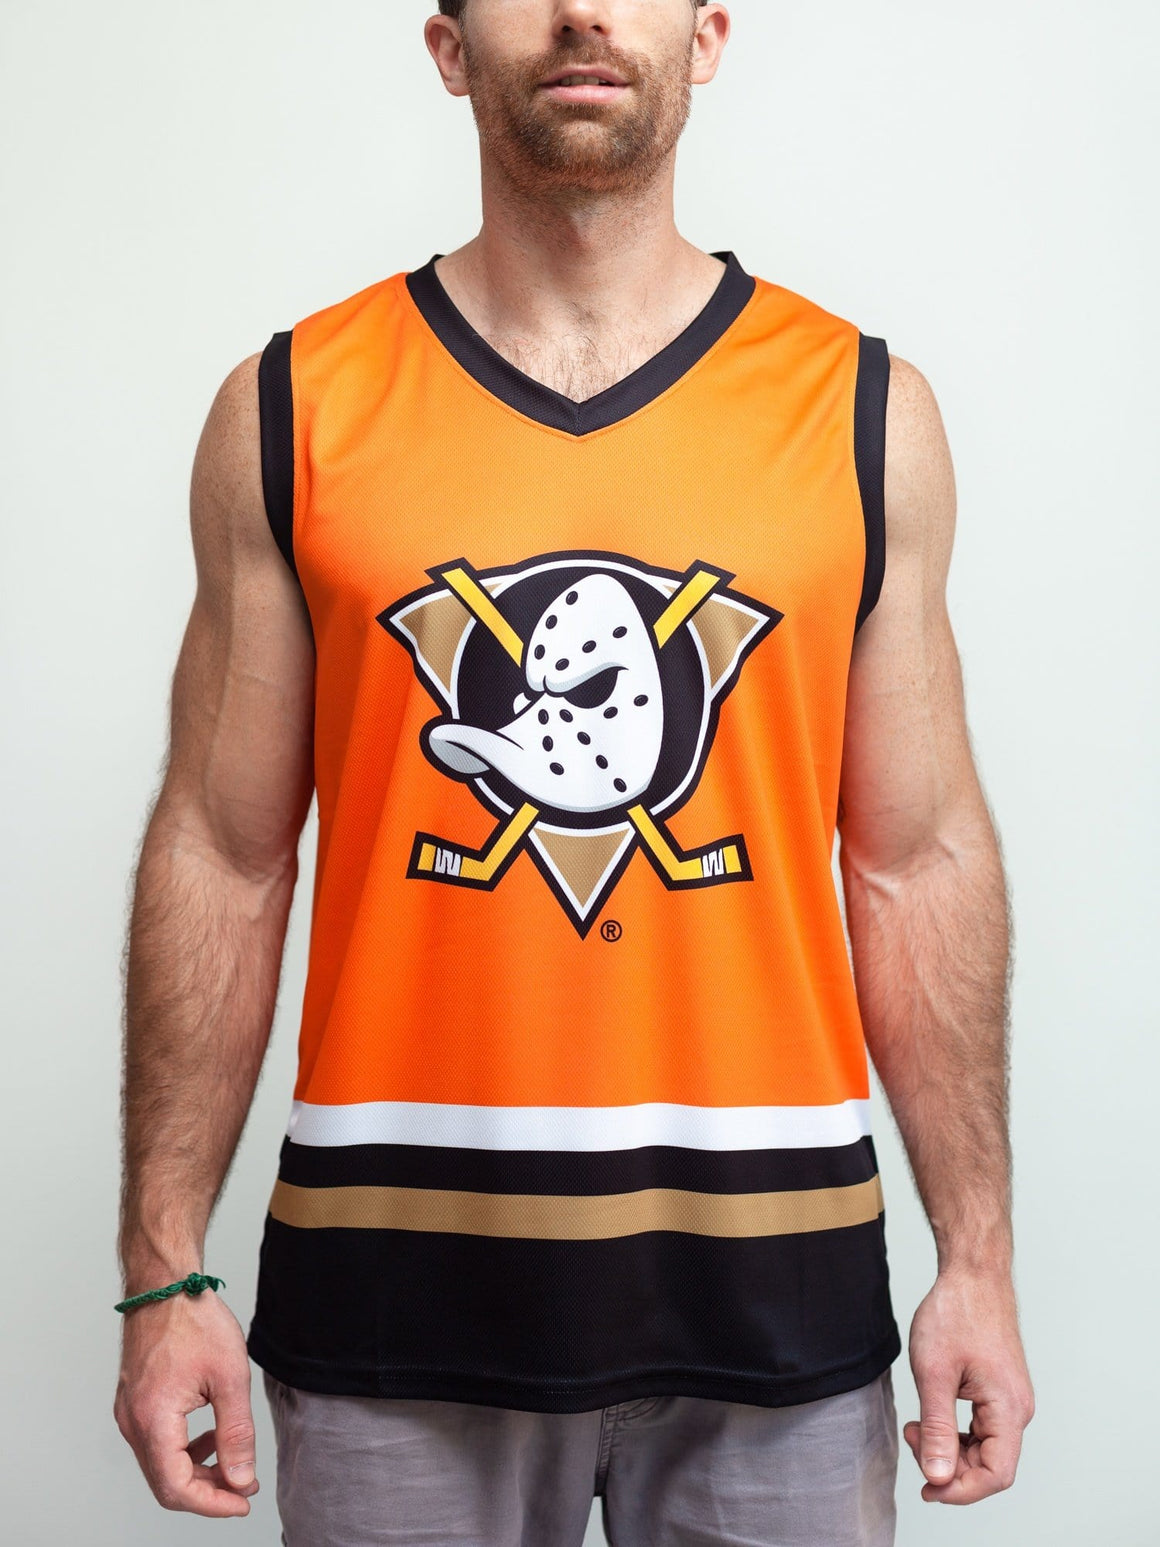 Anaheim Ducks Orange Retro Alternate Hockey Tank